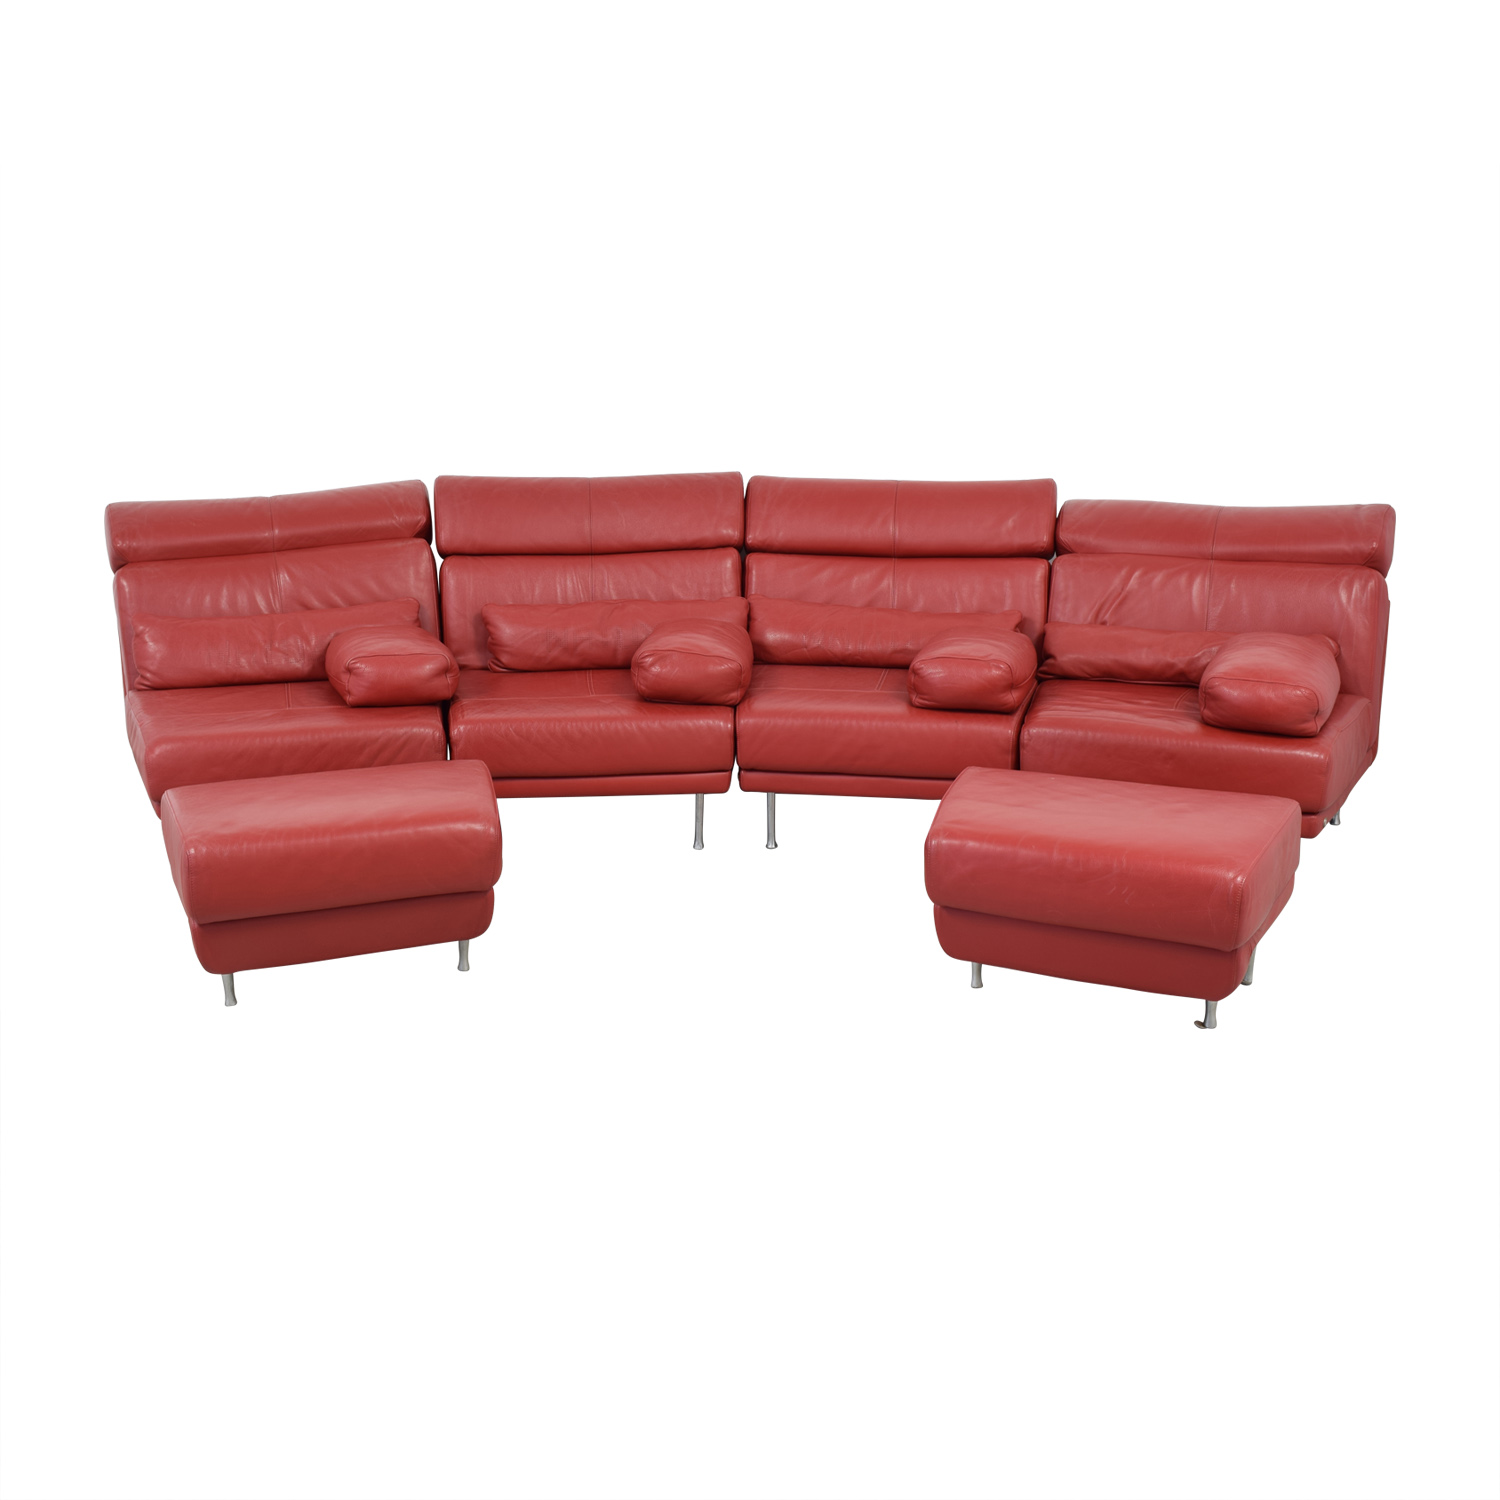 natuzzi red leather sofa and chair fusion grande mist editions b806